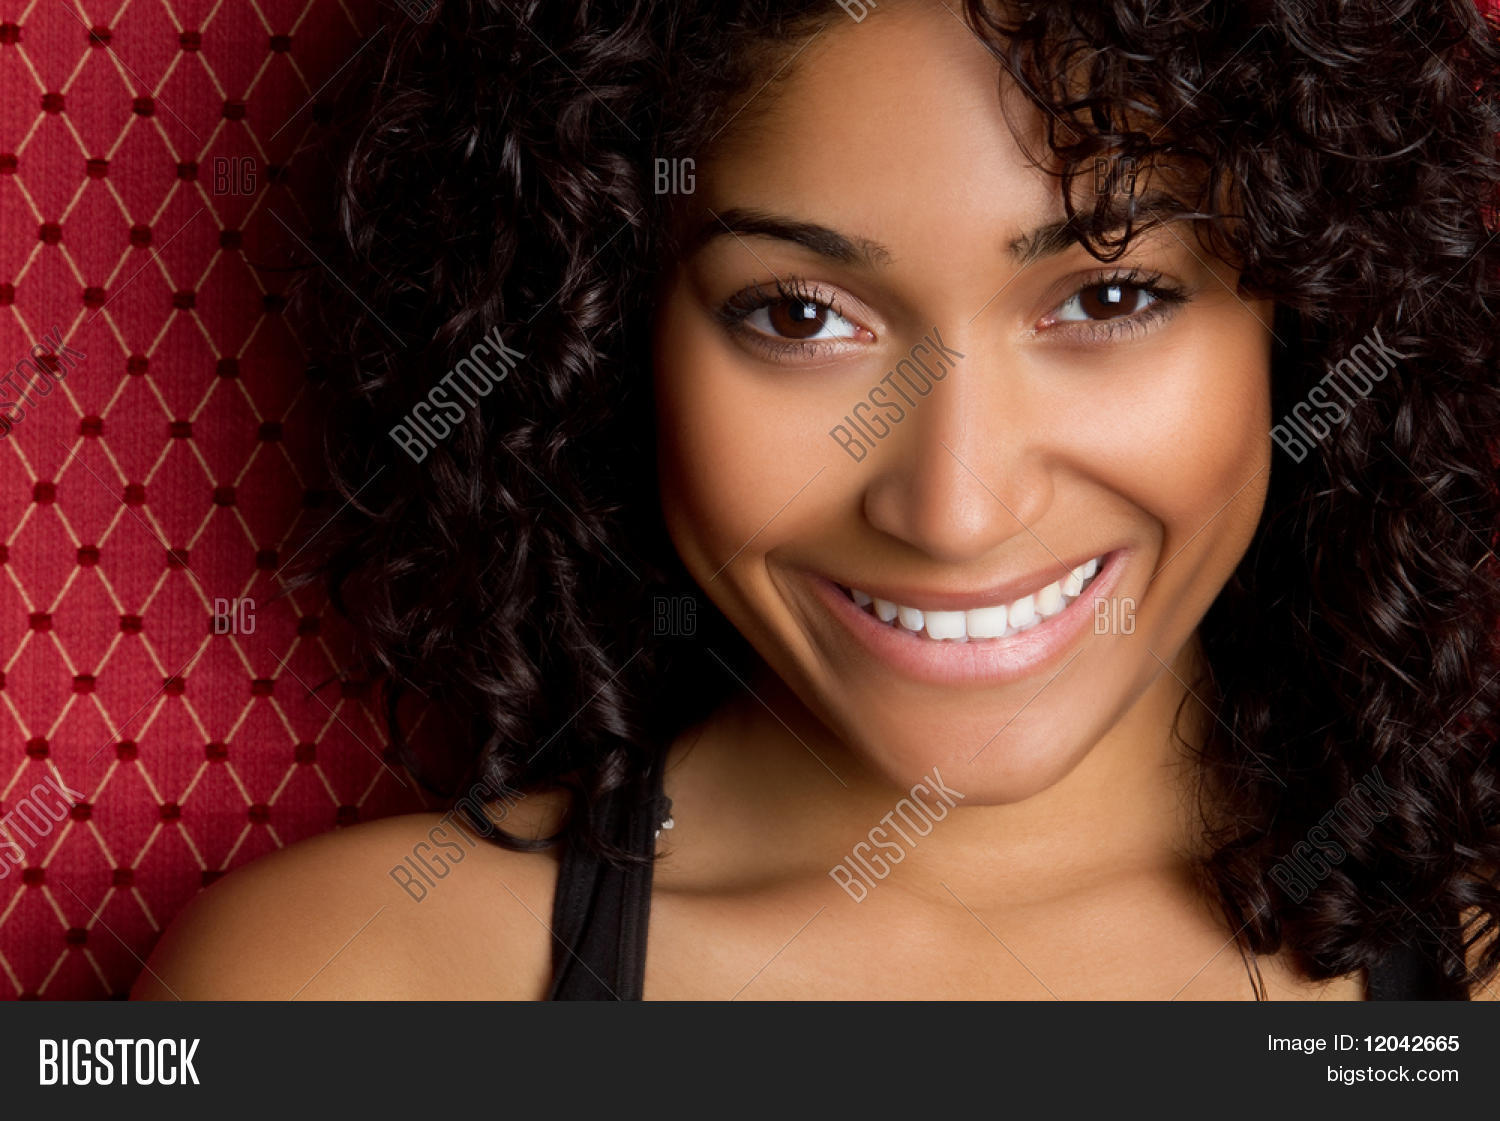 adult,african,african american,african american people,african american woman,african american women,african woman,american,beautiful,beautiful black woman,beautiful woman face,beautiful woman smiling,beauty,black,black hair,black woman,black women,casual,cheerful,close-up,closeup,contact,copy,curly,curly hair,ethnic,ethnicity,eye,face,female,fun,girl,gorgeous,hair,happiness,happy,joy,joyful,laughing,laughter,model,model woman,people,person,playful,portrait,pretty,red,smiling,smiling woman,space,teeth,woman,woman face,woman laughing,woman smile,woman smiling,women face,young,young woman